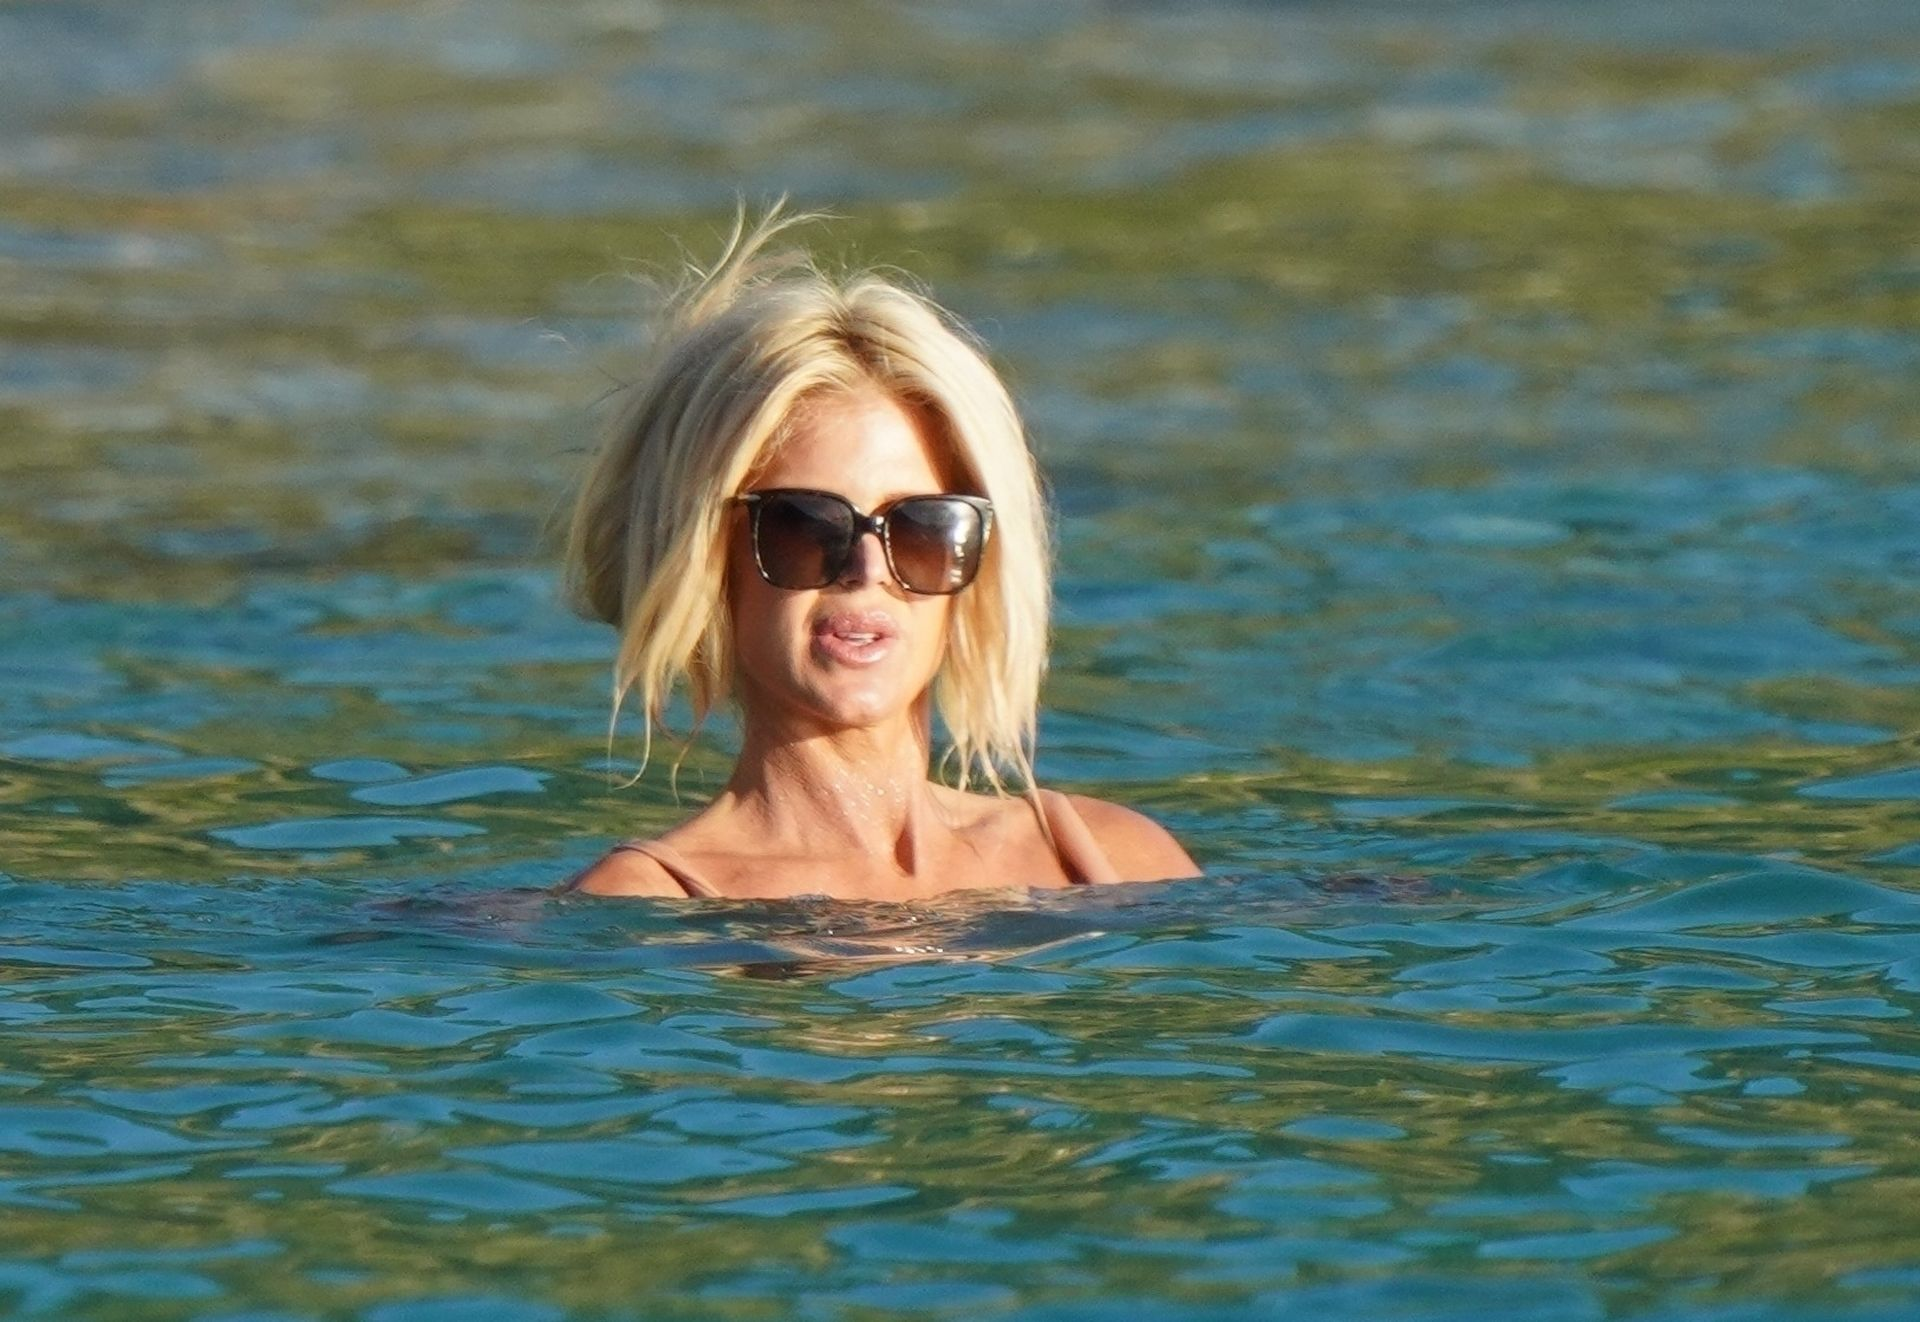 Victoria Silvstedt Sexy 0026